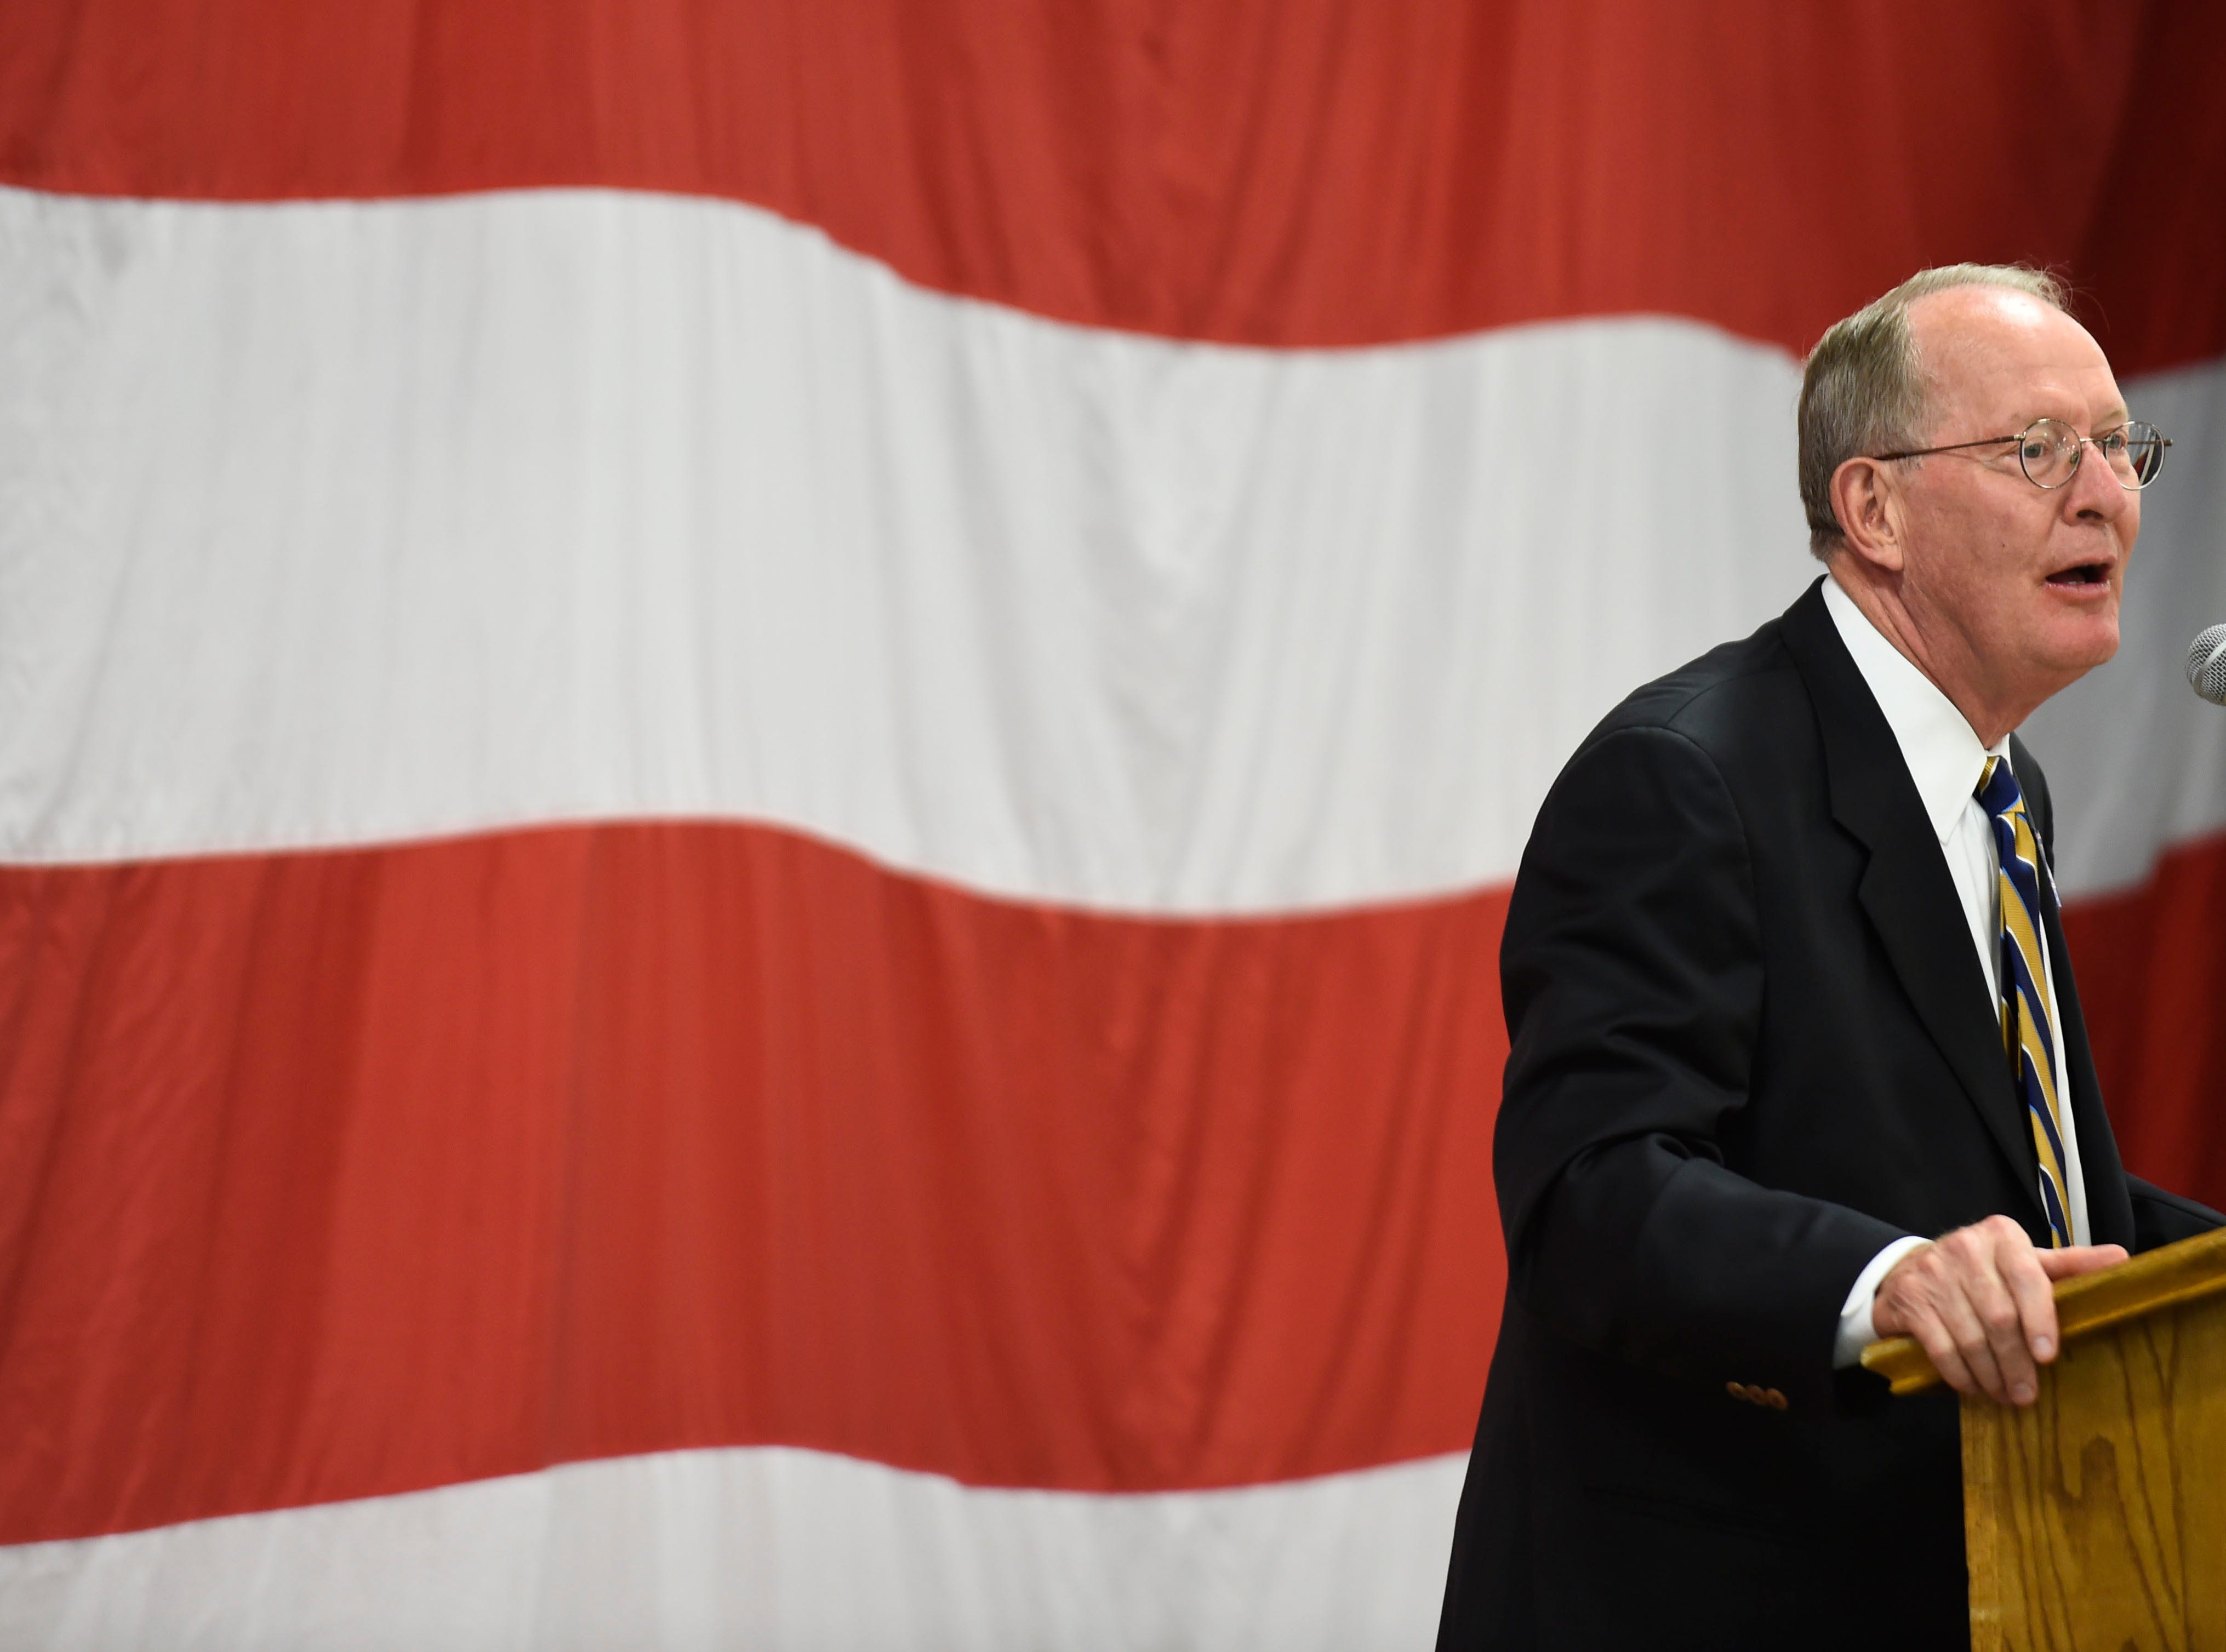 U.S. Sen. Lamar Alexander addresses the crowd during the Lincoln Reagan Dinner at Campbell County High School in LaFollette, Saturday, July 12, 2014.